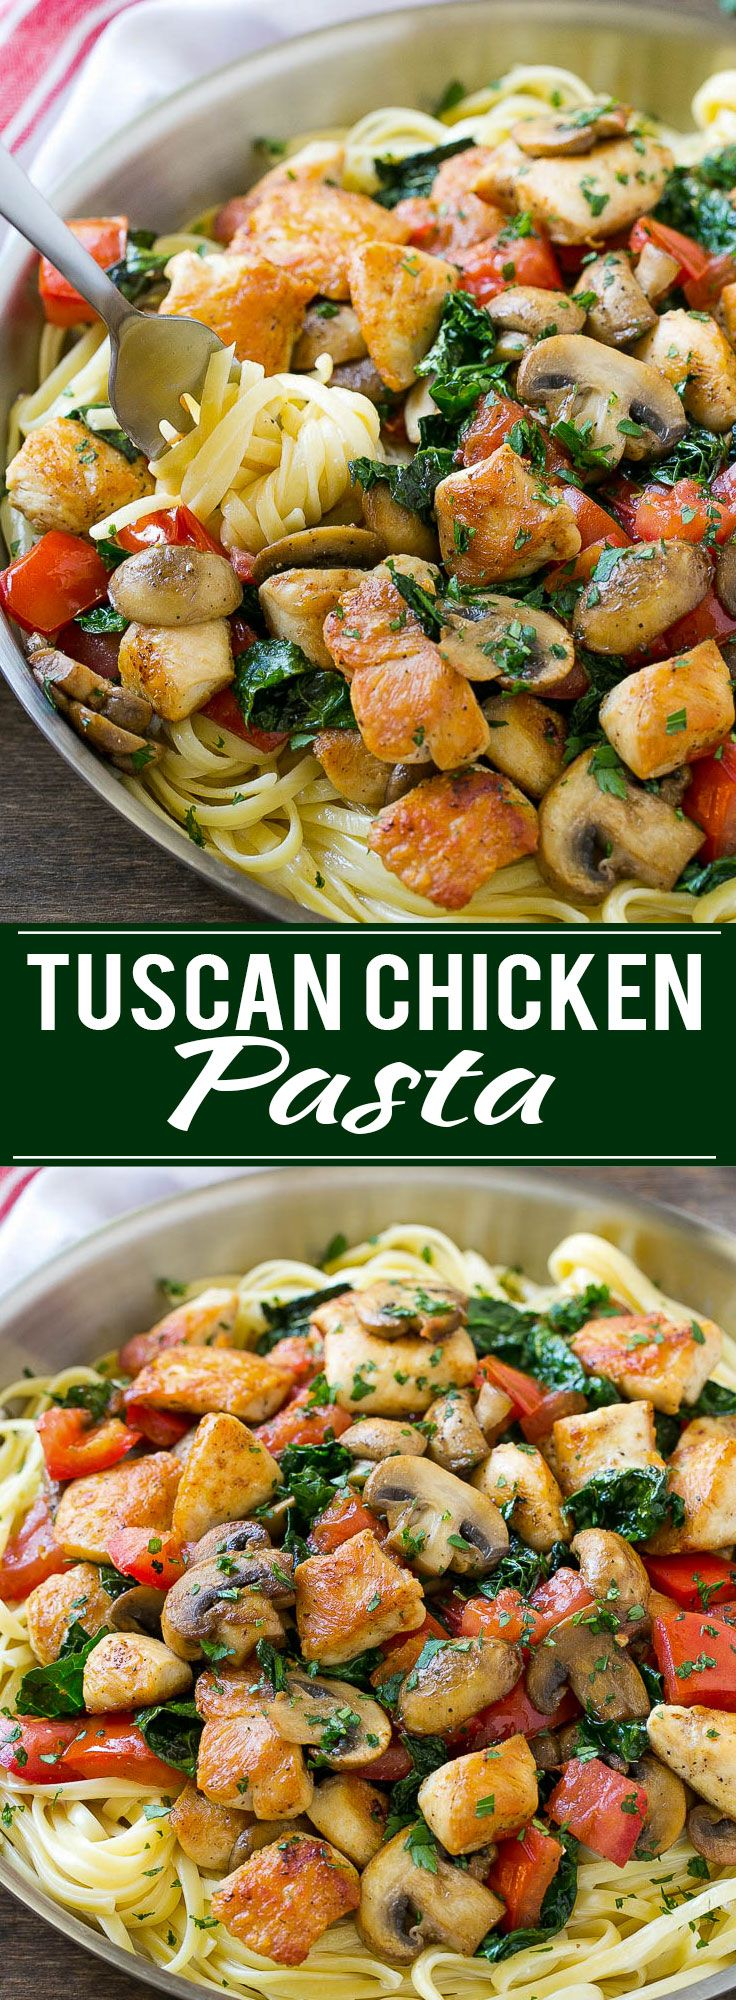 This recipe for Tuscan chicken pasta is creamy pasta topped with seared chicken, tomatoes, kale and mushrooms. An easy and hearty dinner that's ready in no time!: